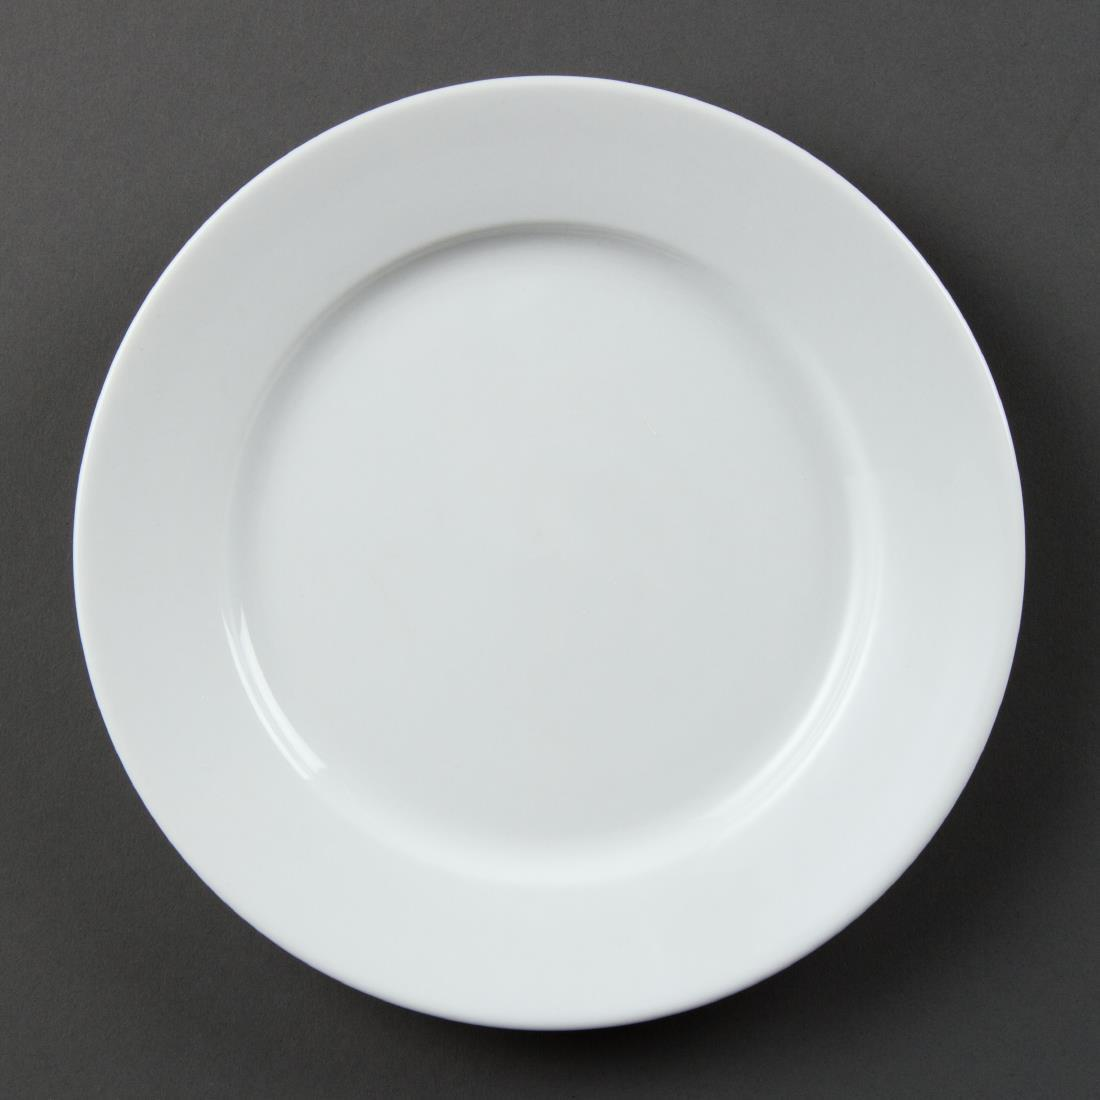 Olympia Whiteware Wide Rimmed Plates 202mm